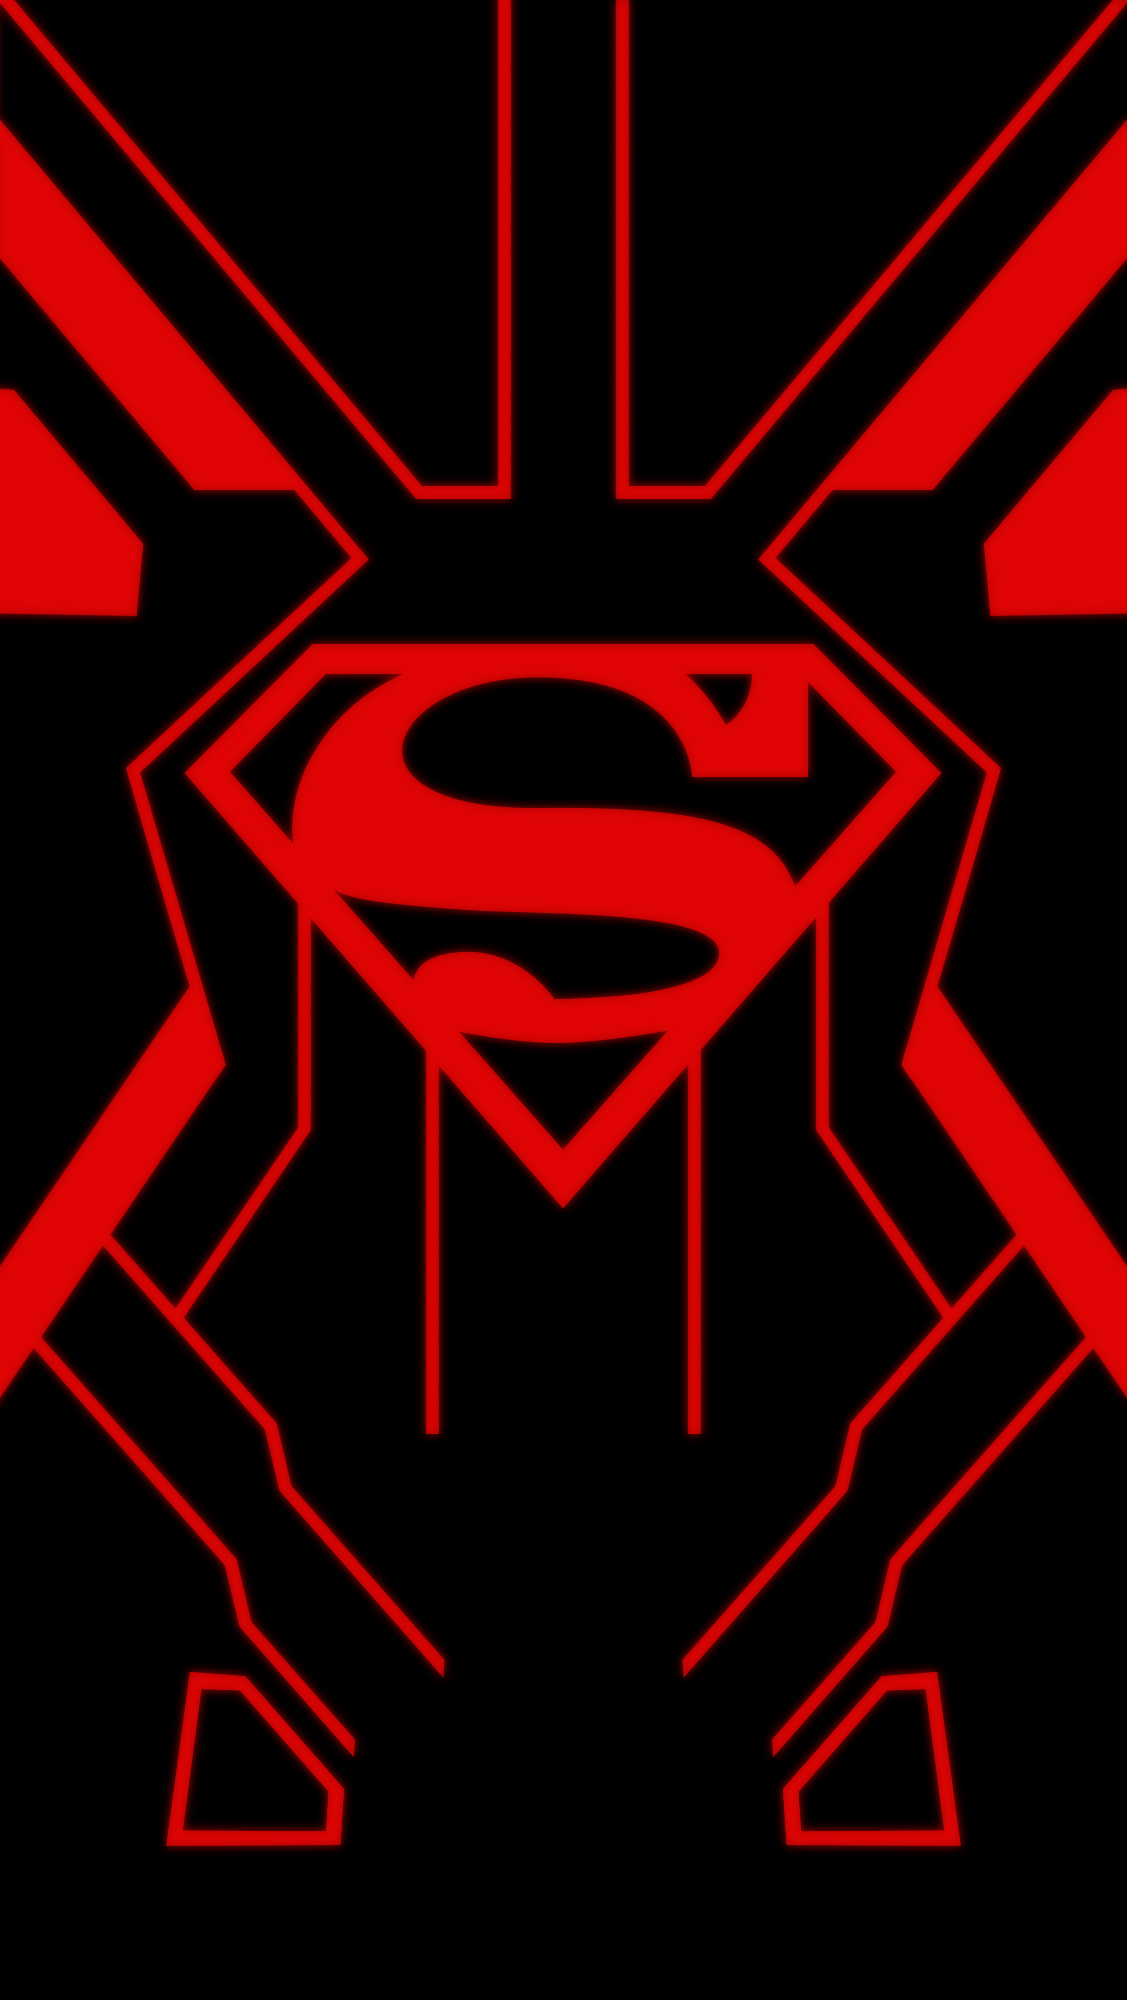 Hd wallpaper for iphone 5s - Superboy Iphone 5 Wallpaper By Izlacson Customization Wallpaper Iphone